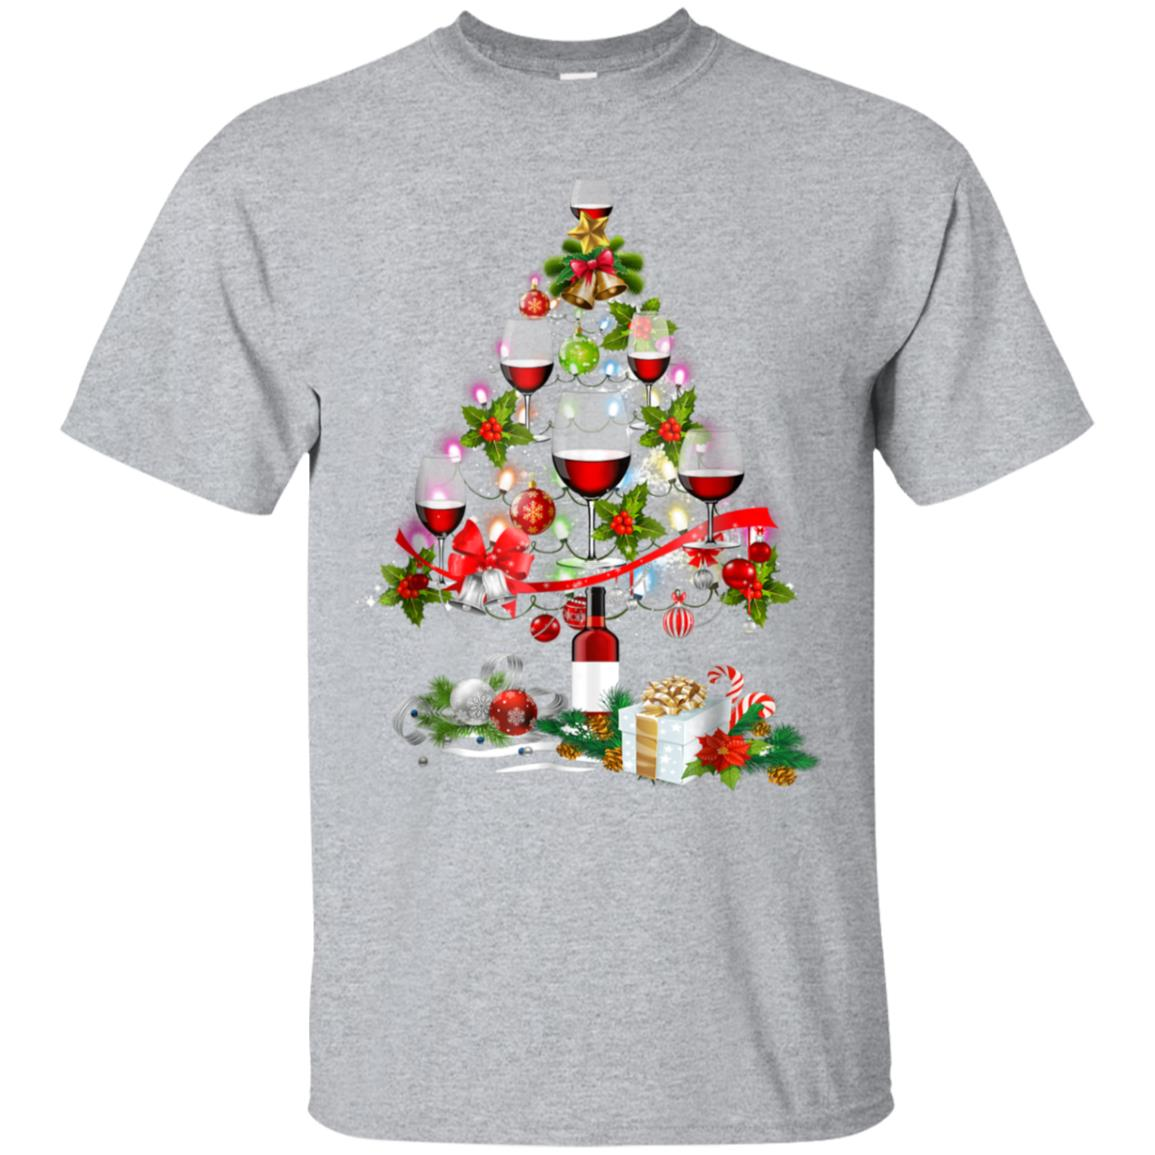 Christmas Tree Wine Glass - Merry Xmas T-Shirt 99promocode